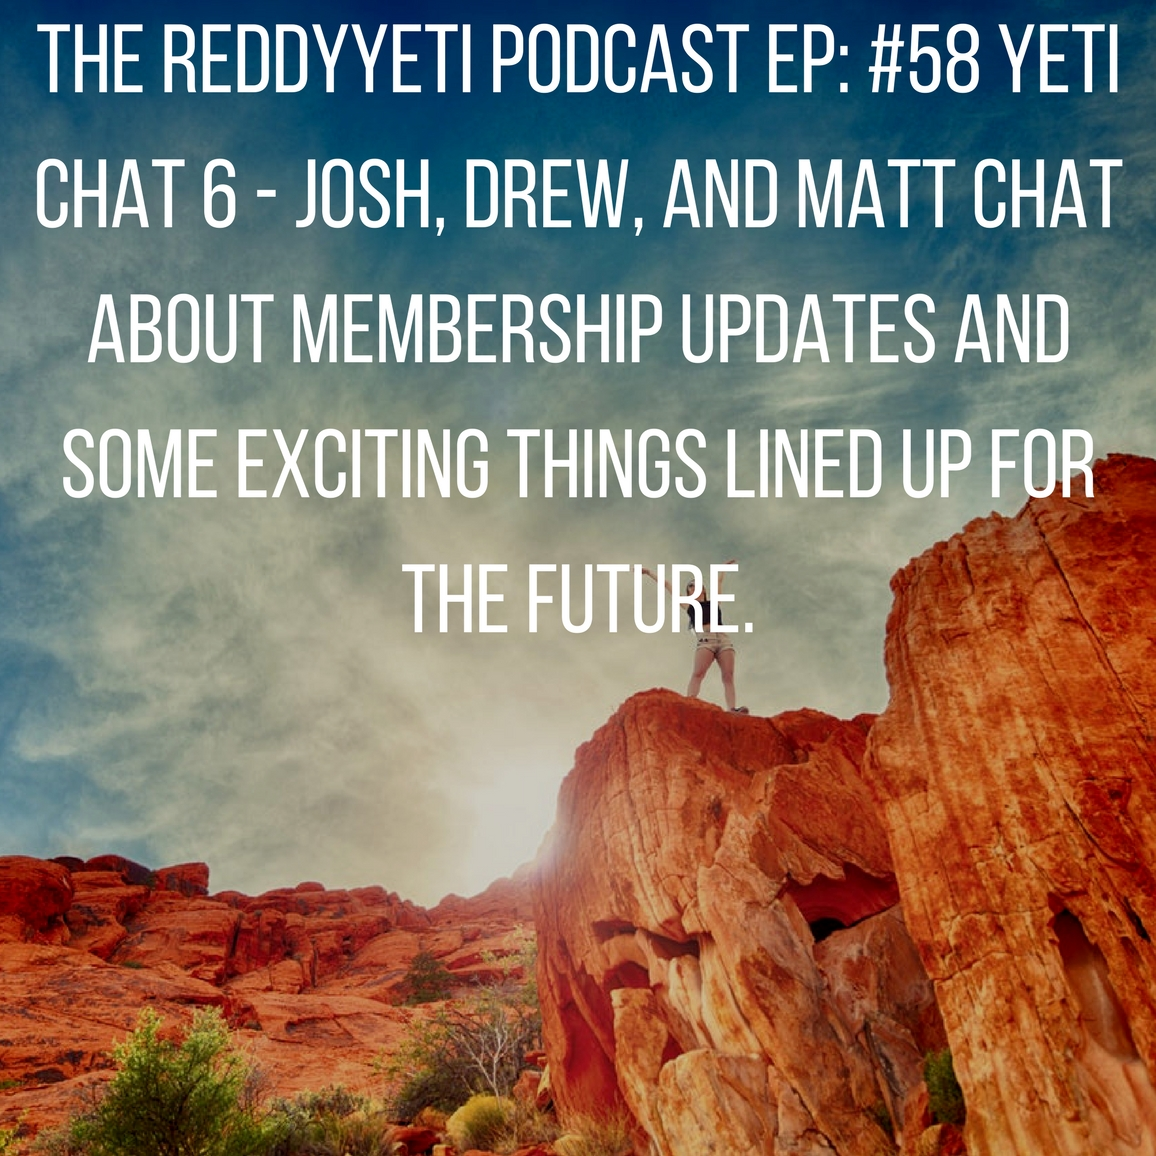 Yeti Chat Podcast image.jpg